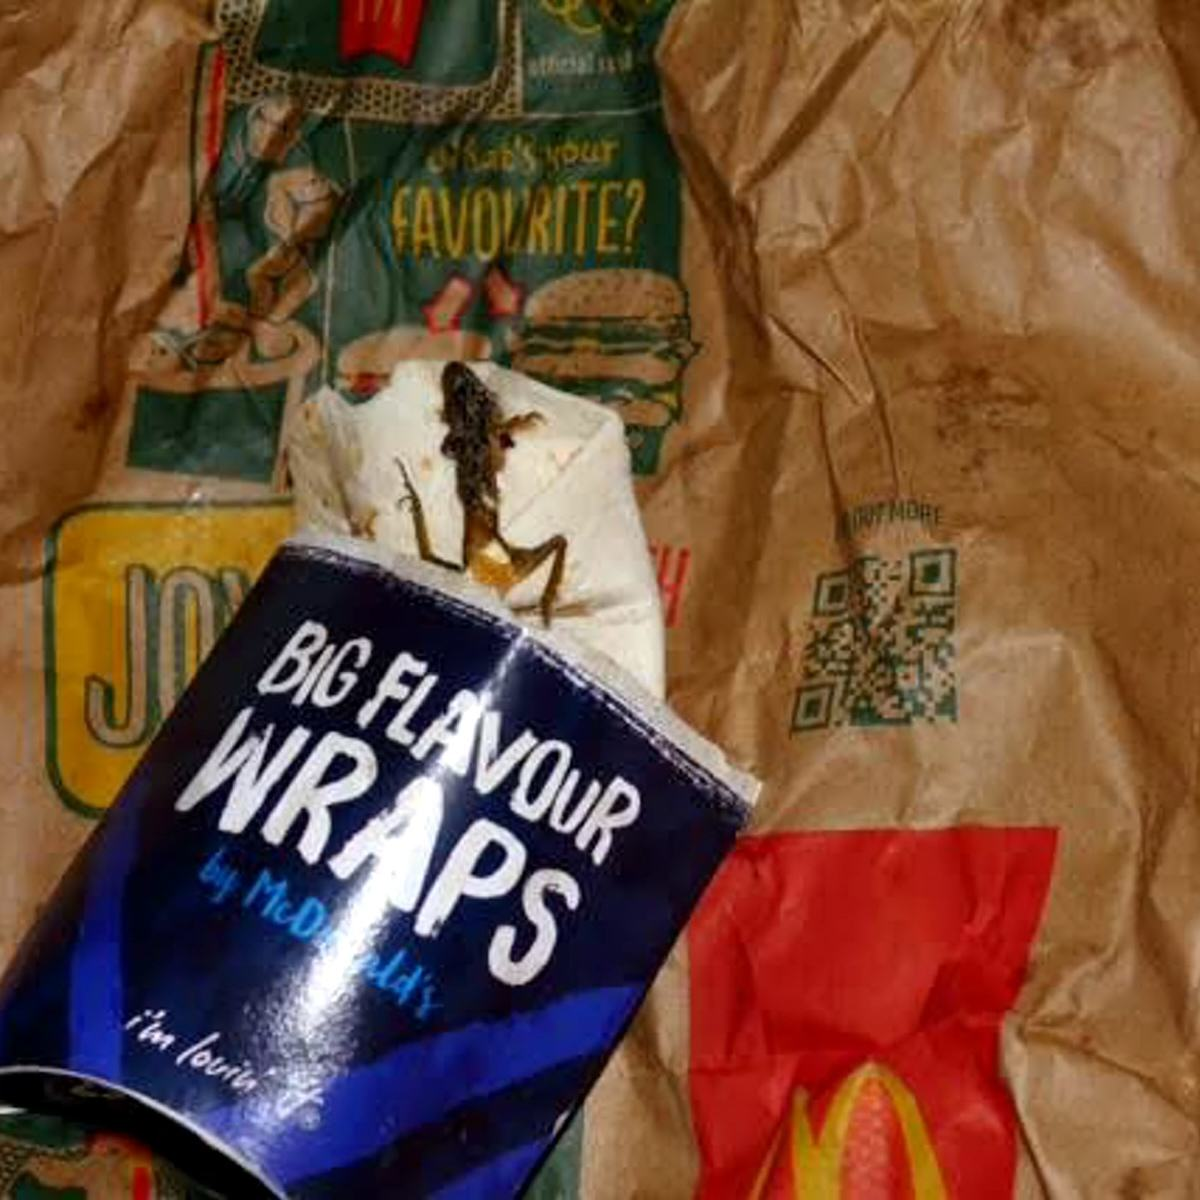 Seven Truly Disgusting Things People Found In Their Food In 2015 UNILAD SWNS MCDONALDS FROG 0347271